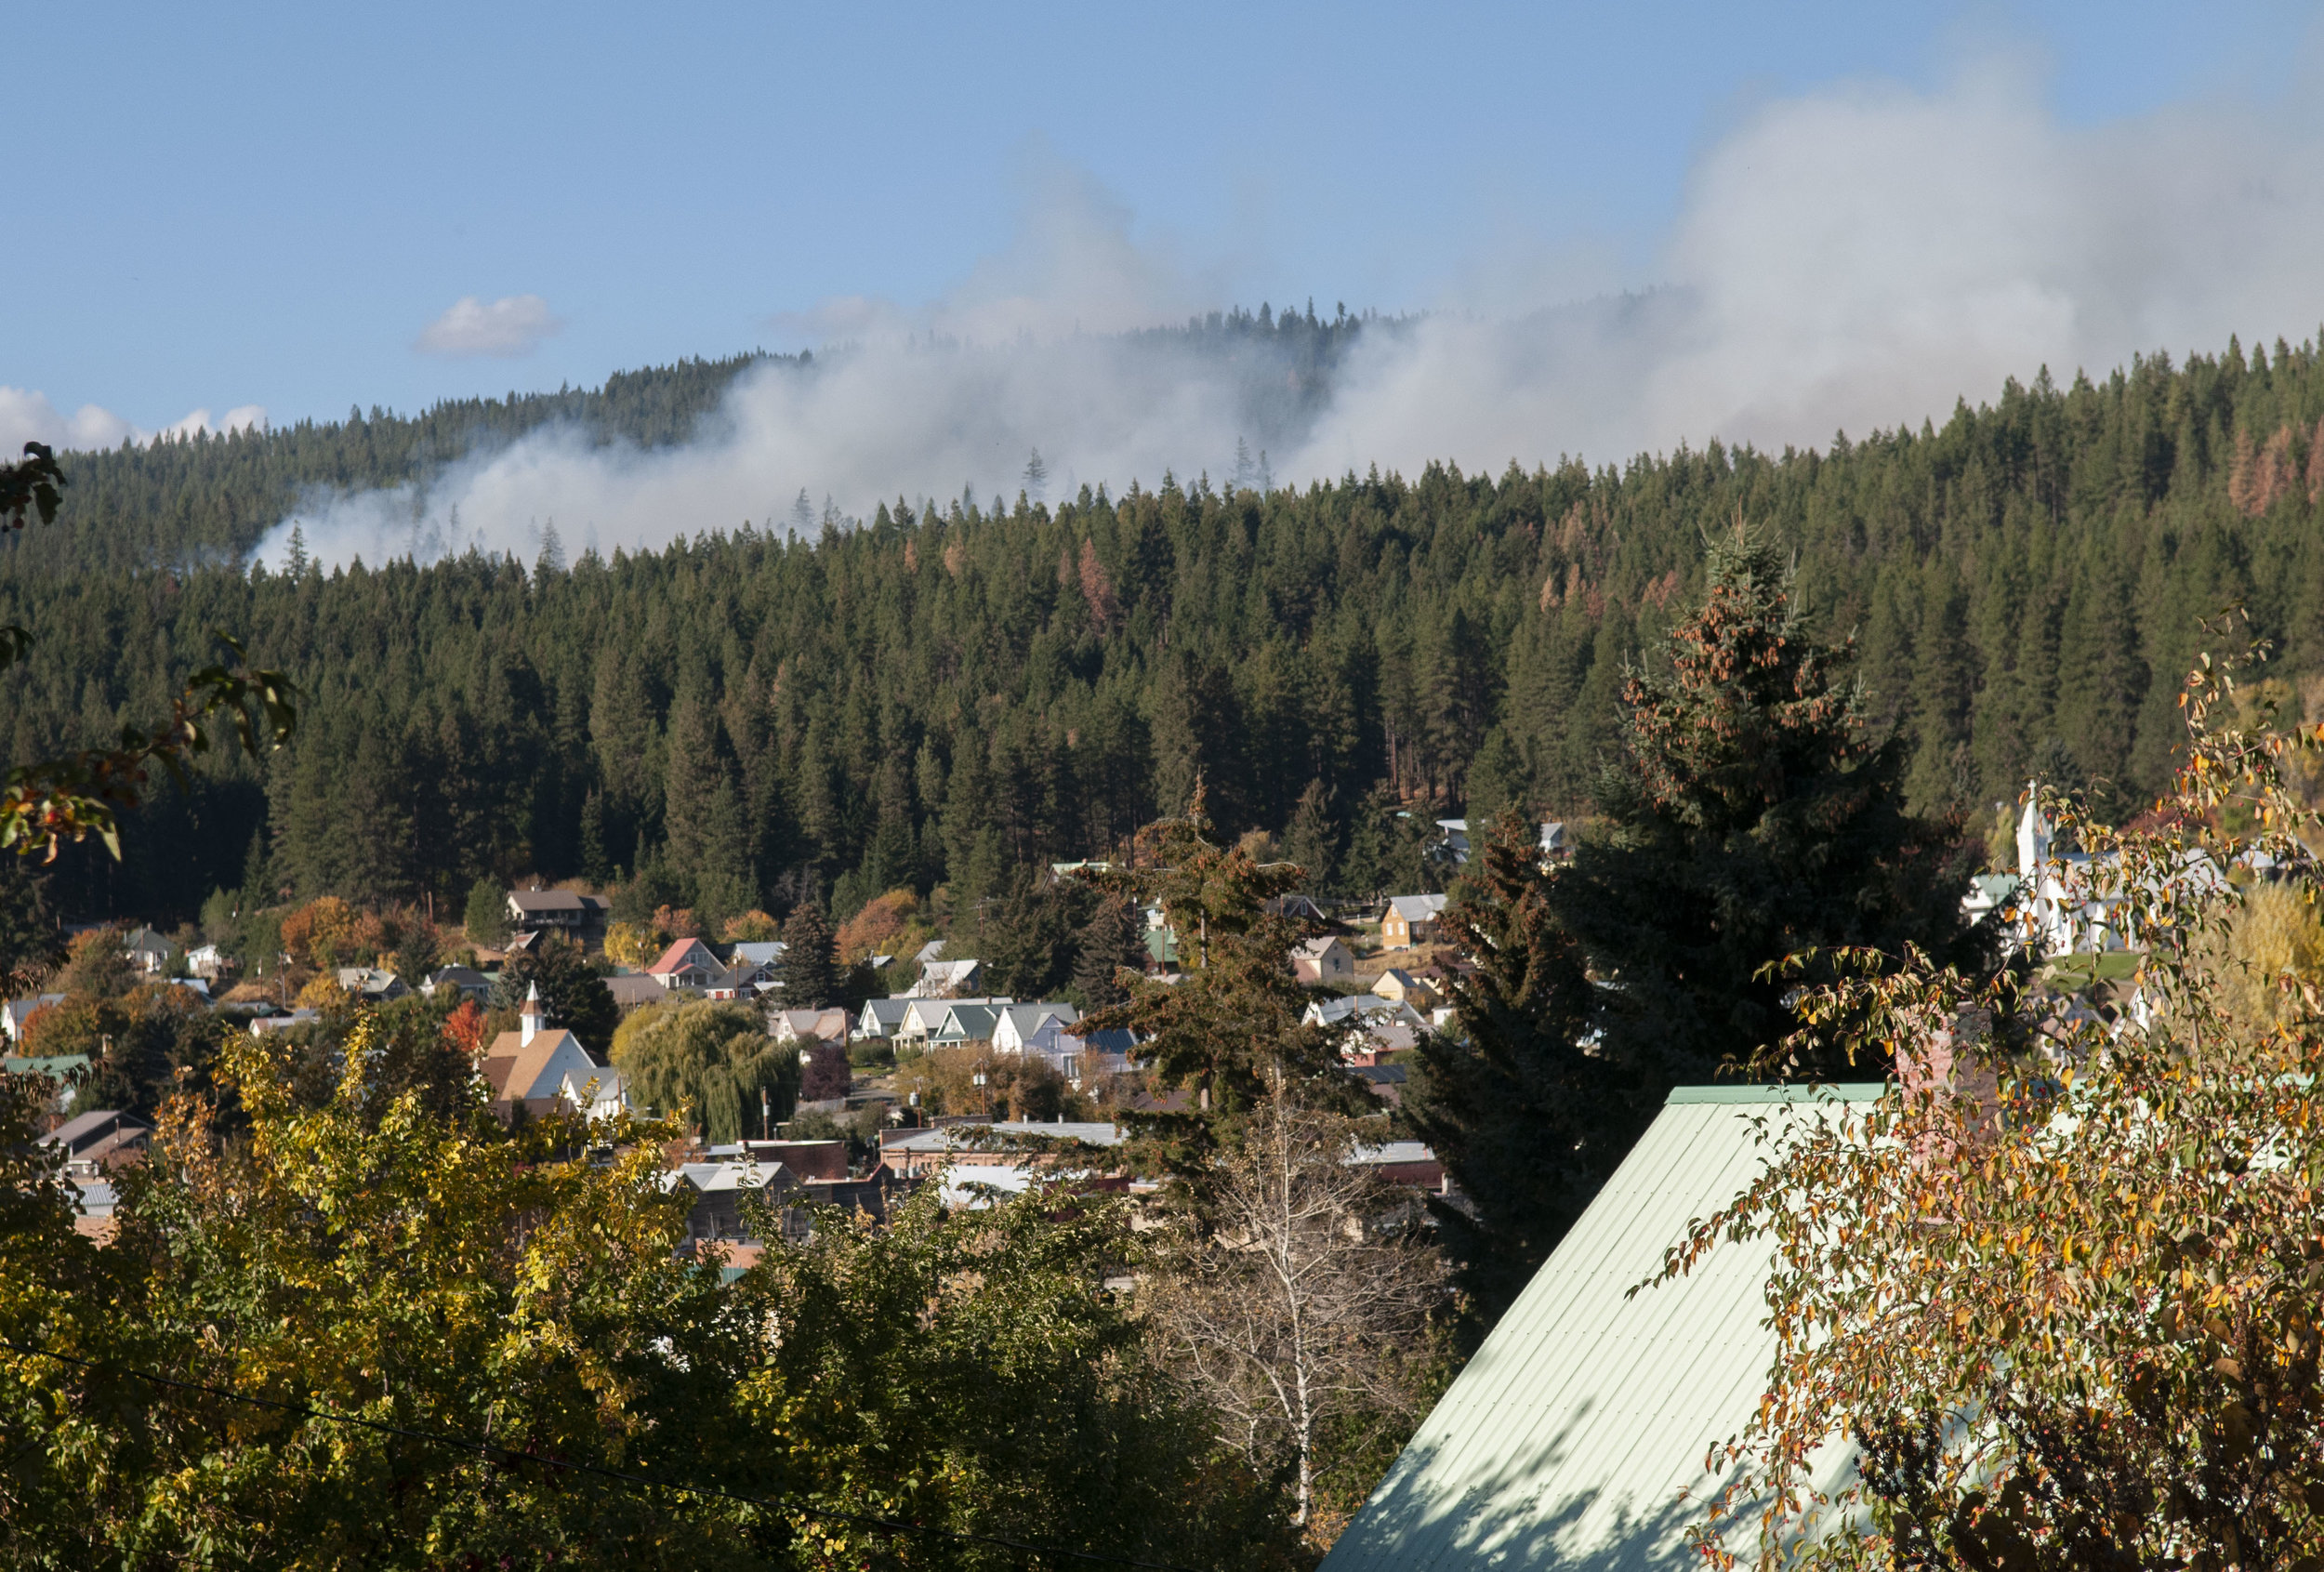 The Oct. 4 burn on 33 acres as seen from the town of Roslyn. © Nikolaj Lasbo / TNC